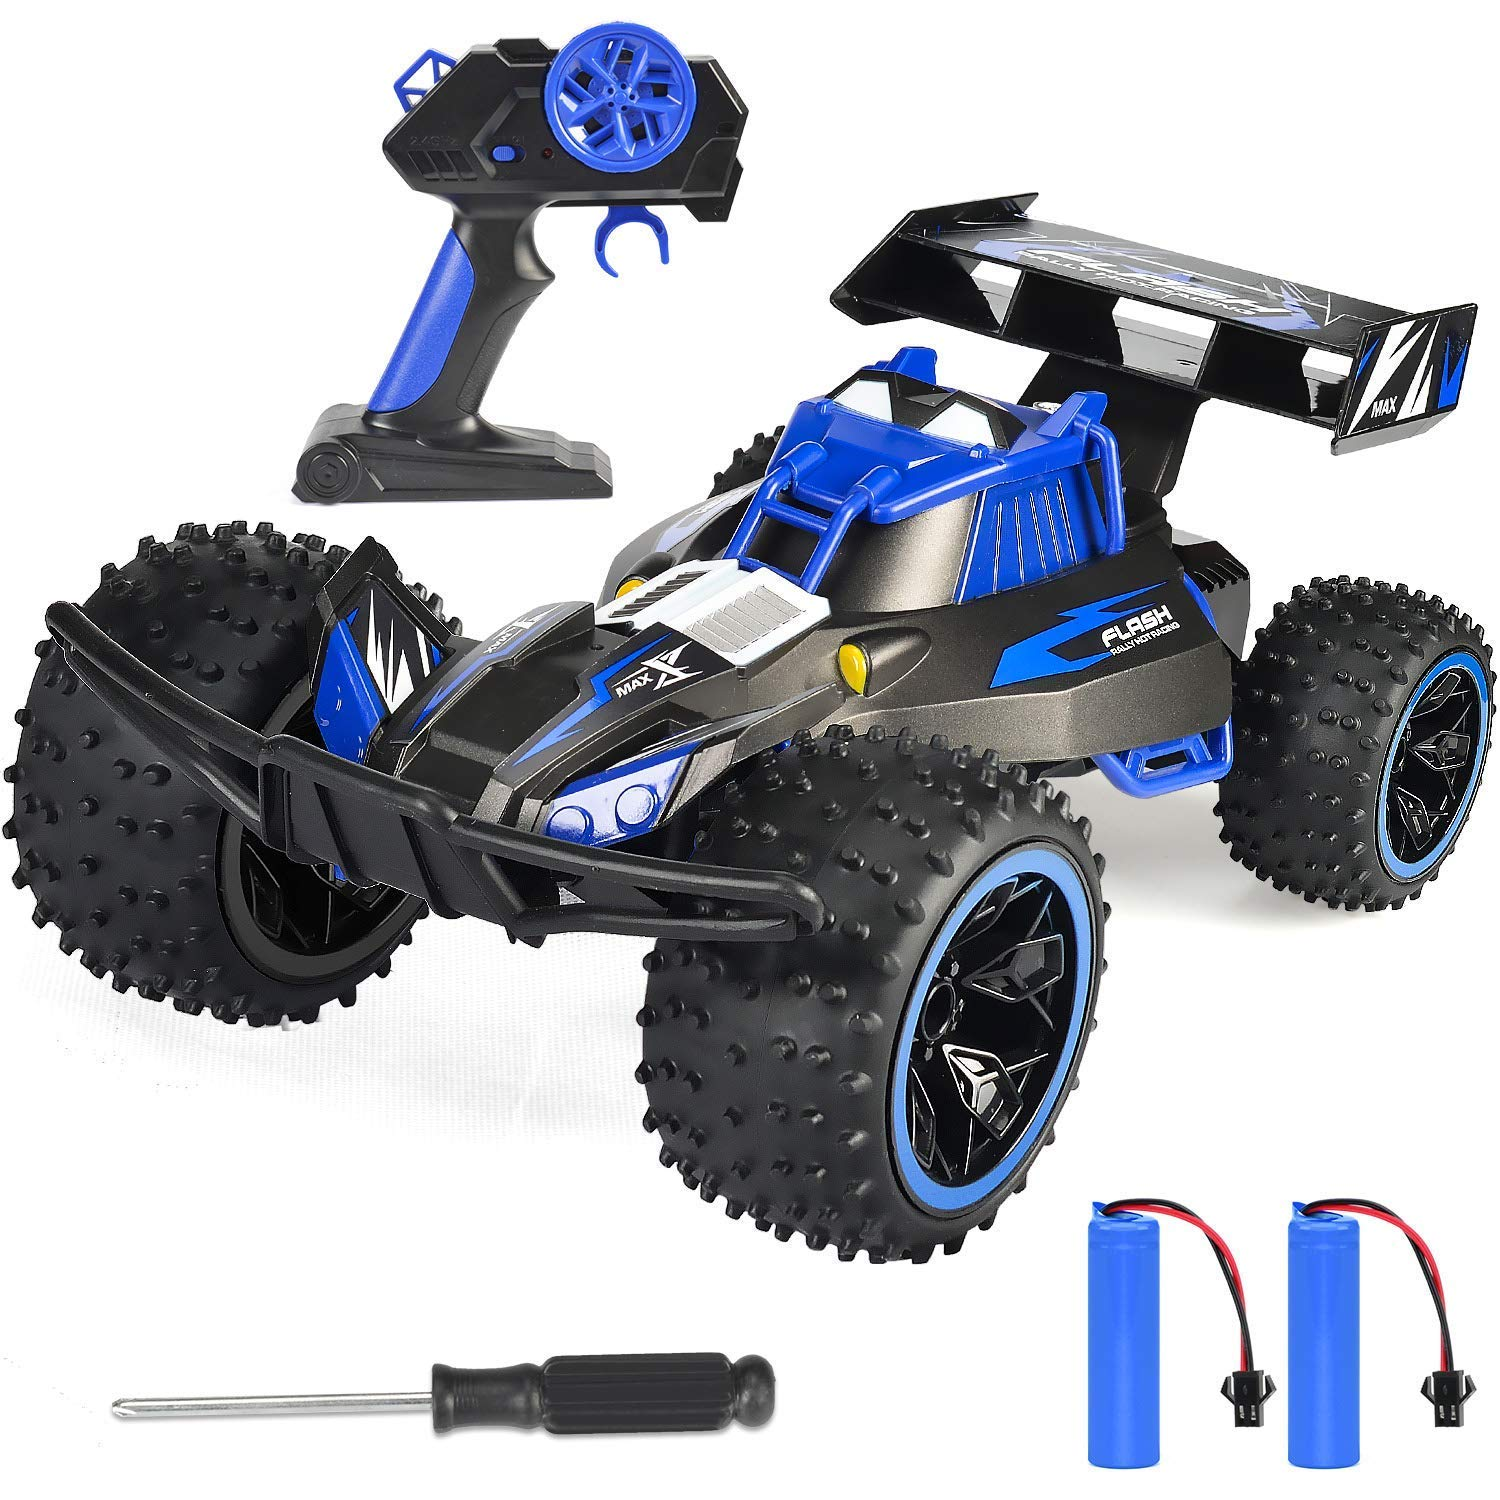 B081X28DBC RC Car, NQD 2019 Updated 1/16 Scale High Speed Remote Control Car, 2.4Ghz Off Road RC Trucks with Two Rechargeable Batteries, Electric Toy Car for Toy Gifts for 2, 3, 4, 5, 6, 7, 8 Year Old Boy 81AjKMc-z0L